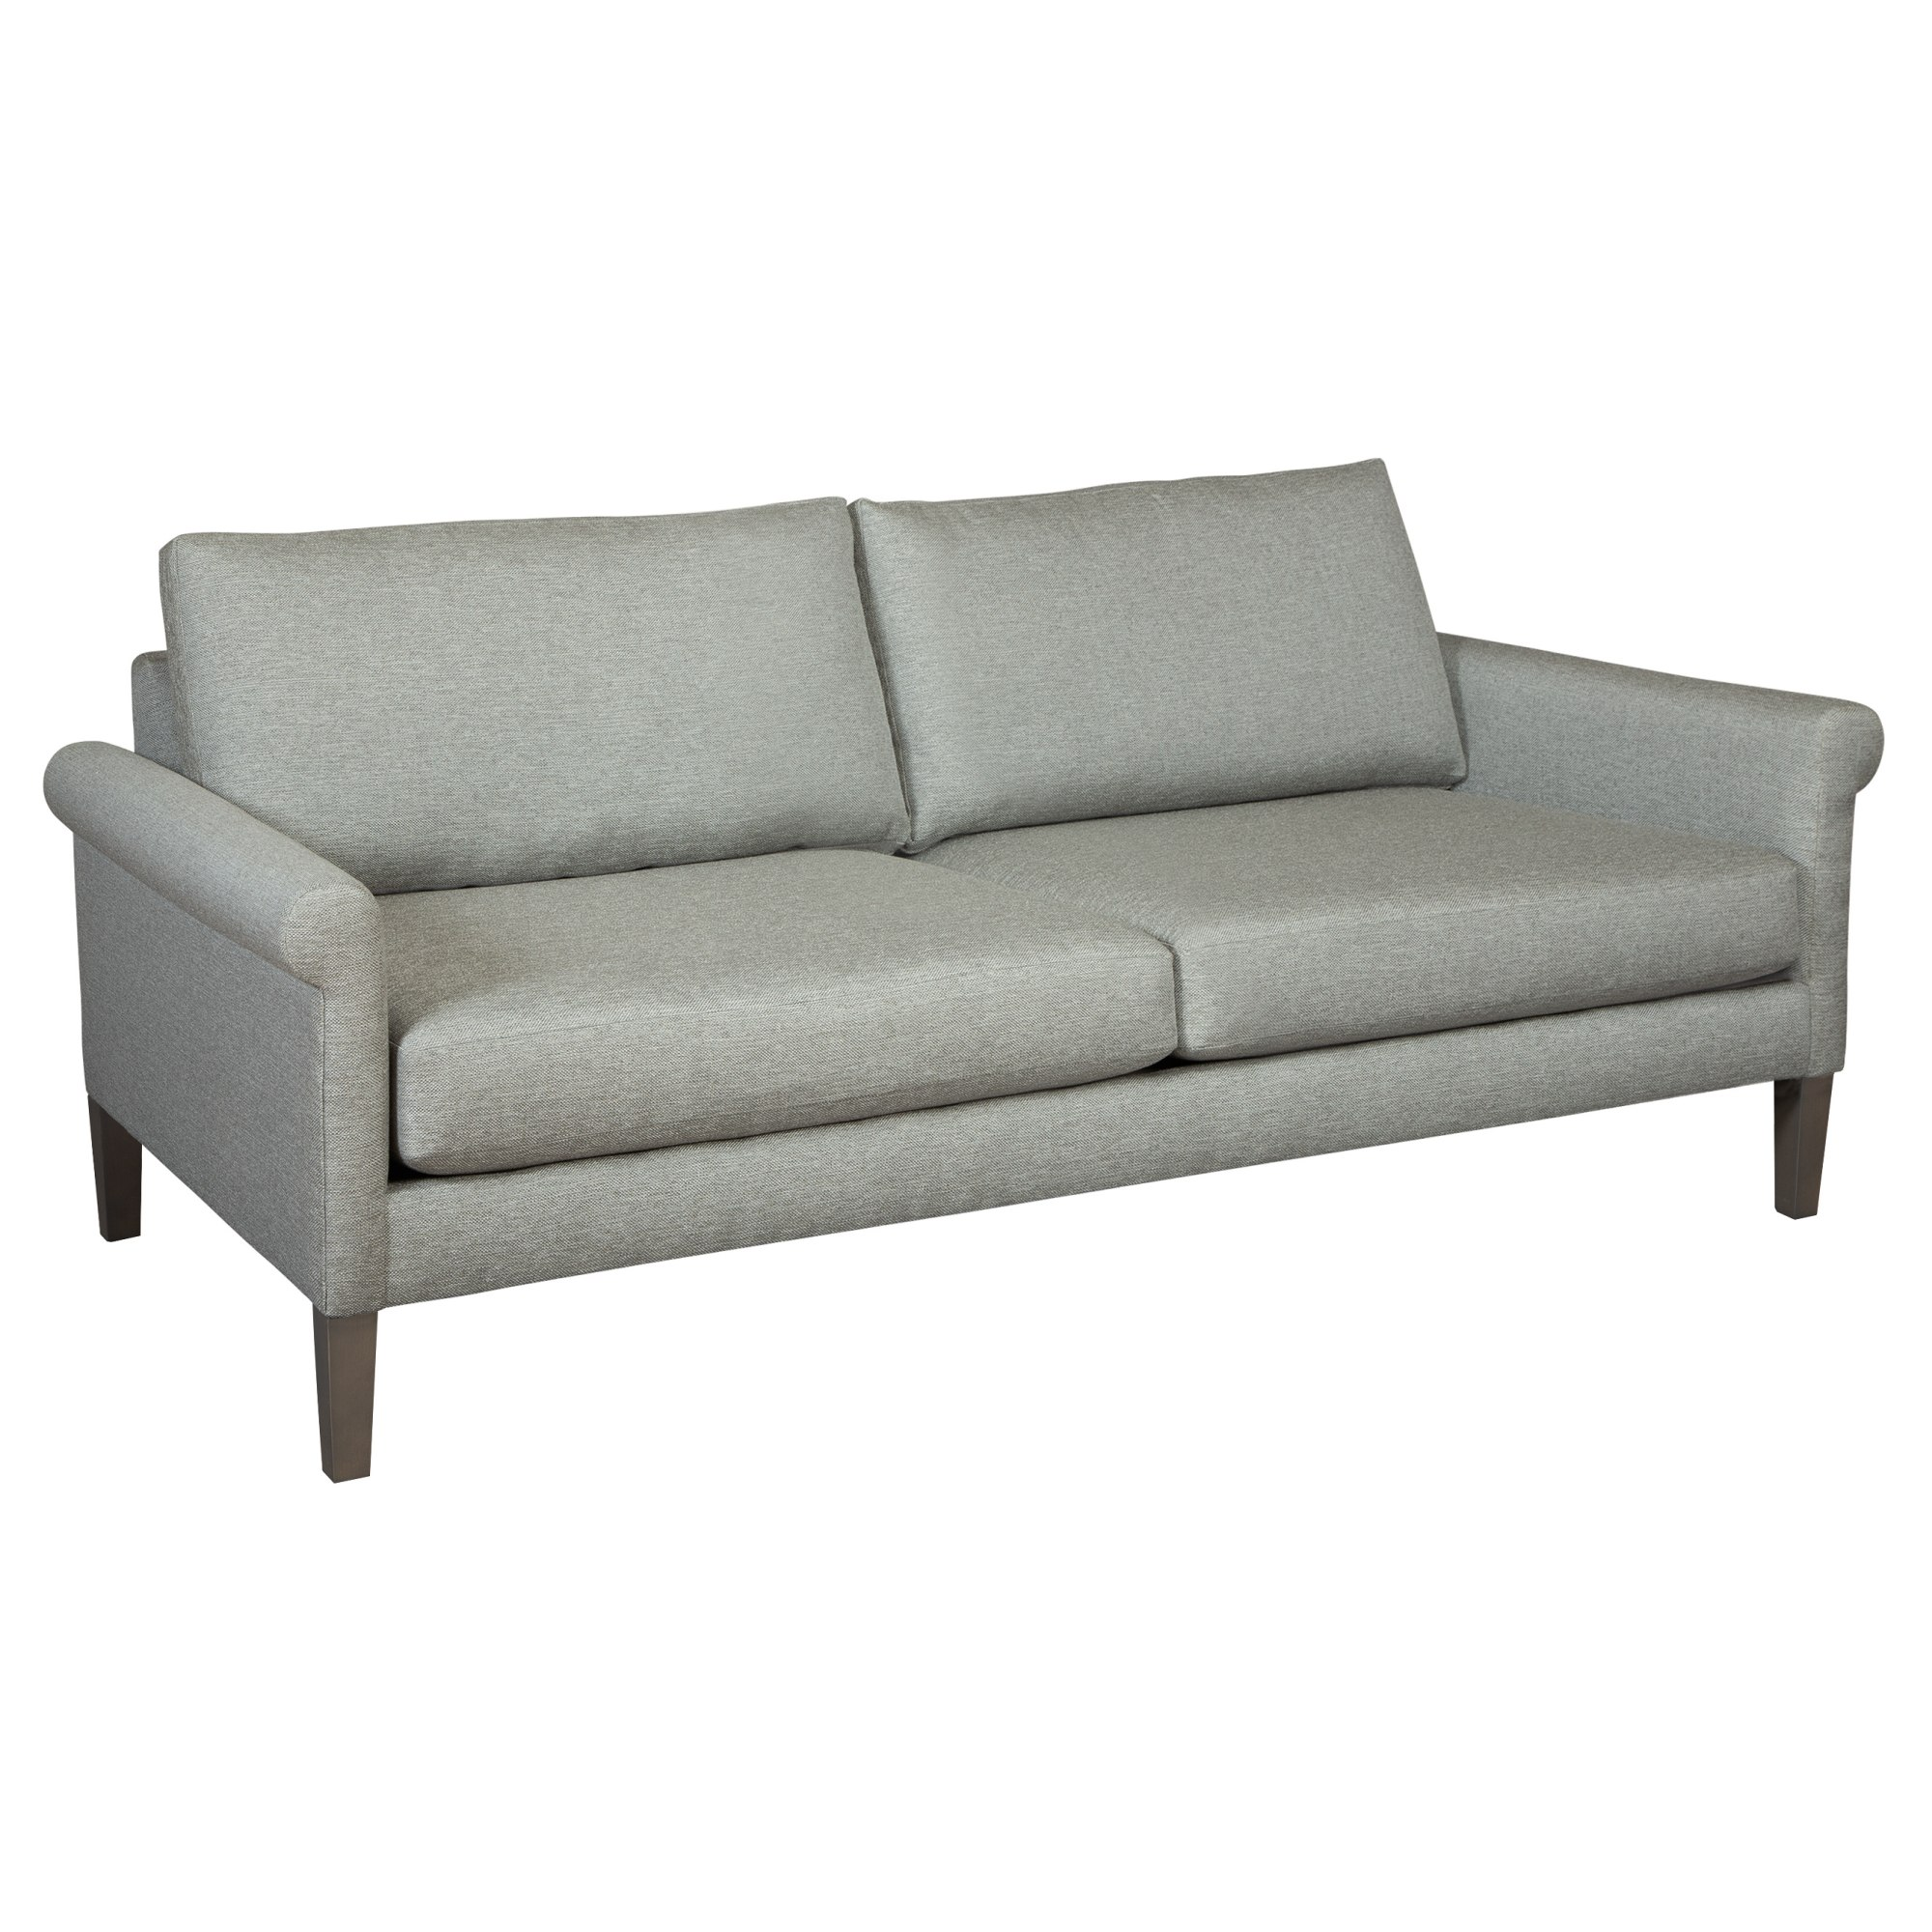 """Image for 174275 Metro 75"""" Rolled Arm Sofa from Hekman Official Website"""